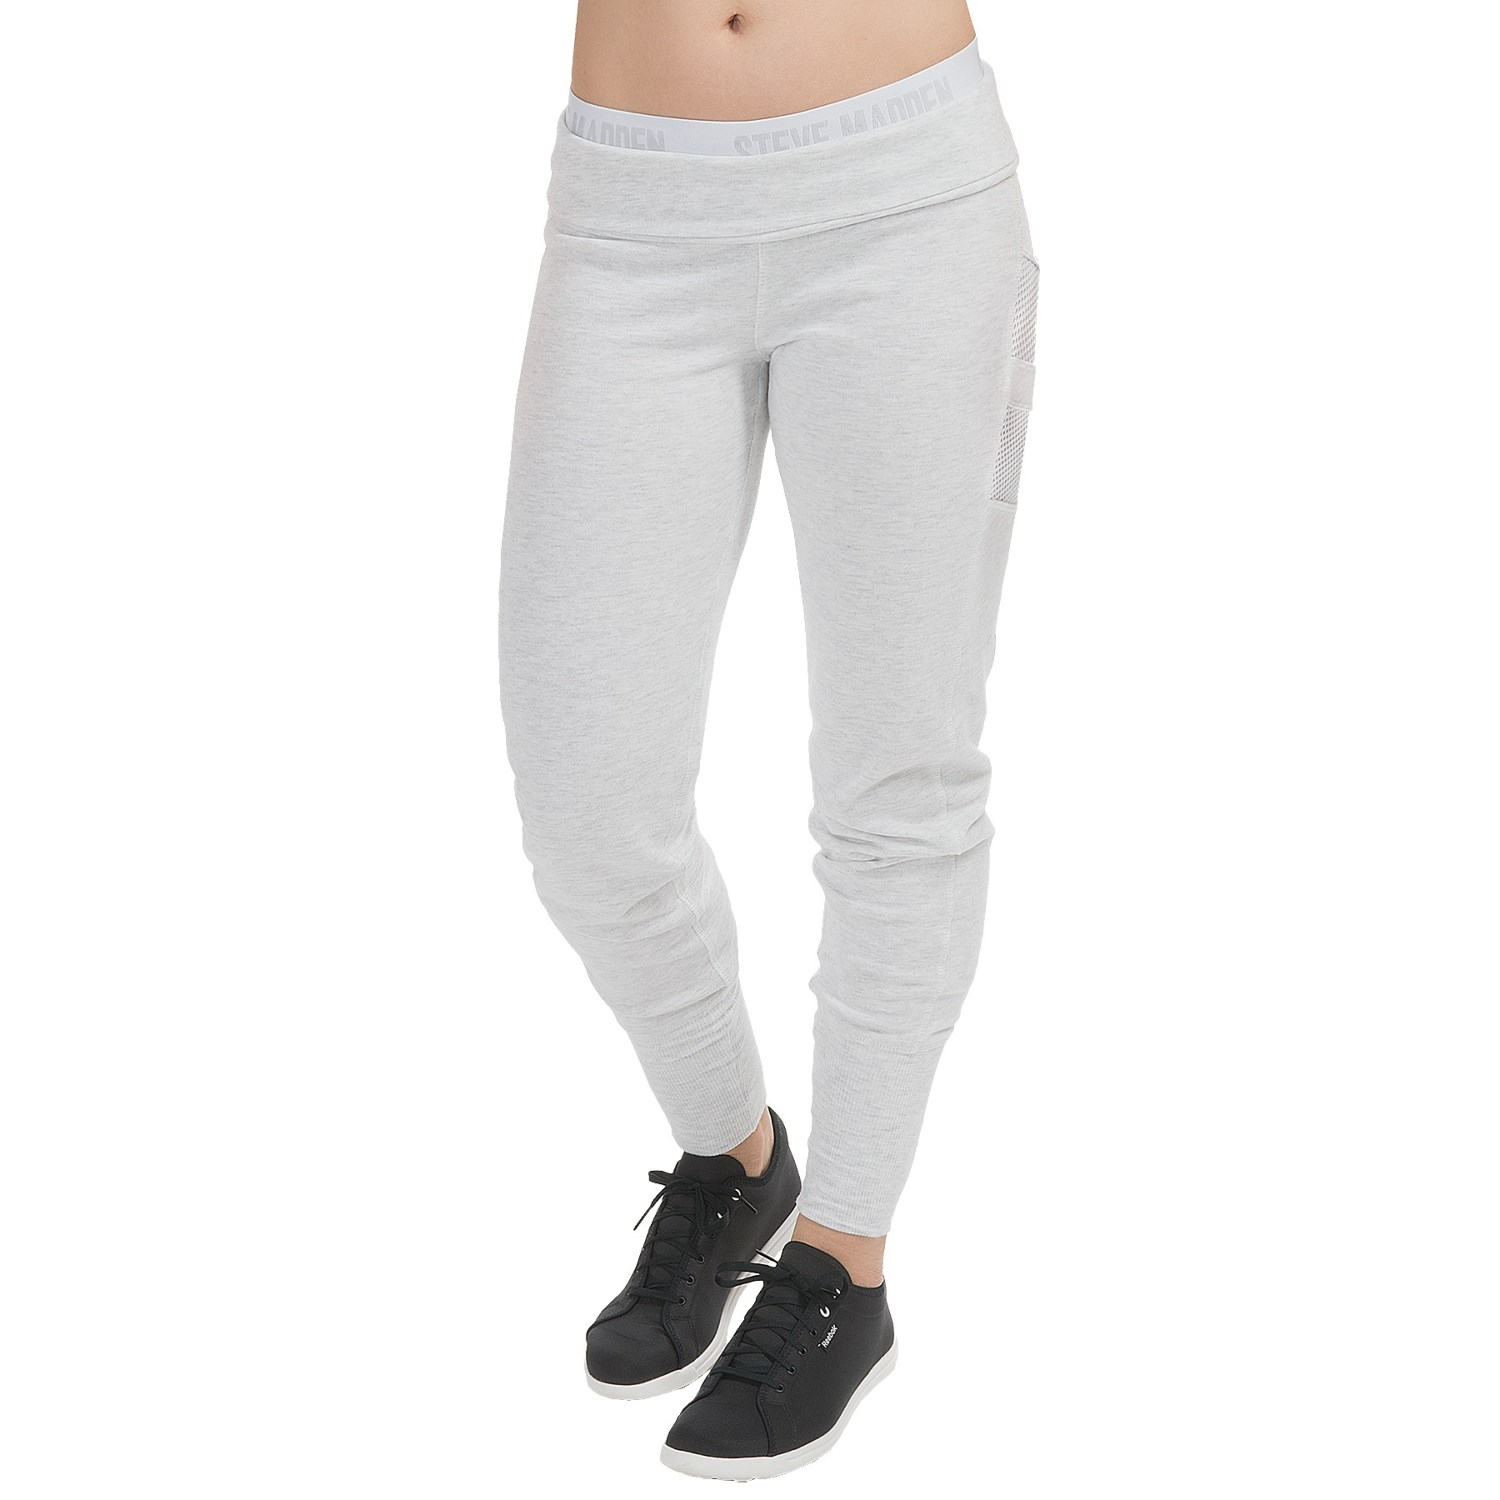 Innovative Athletic Works  Women39s Mesh Pants  Walmartcom